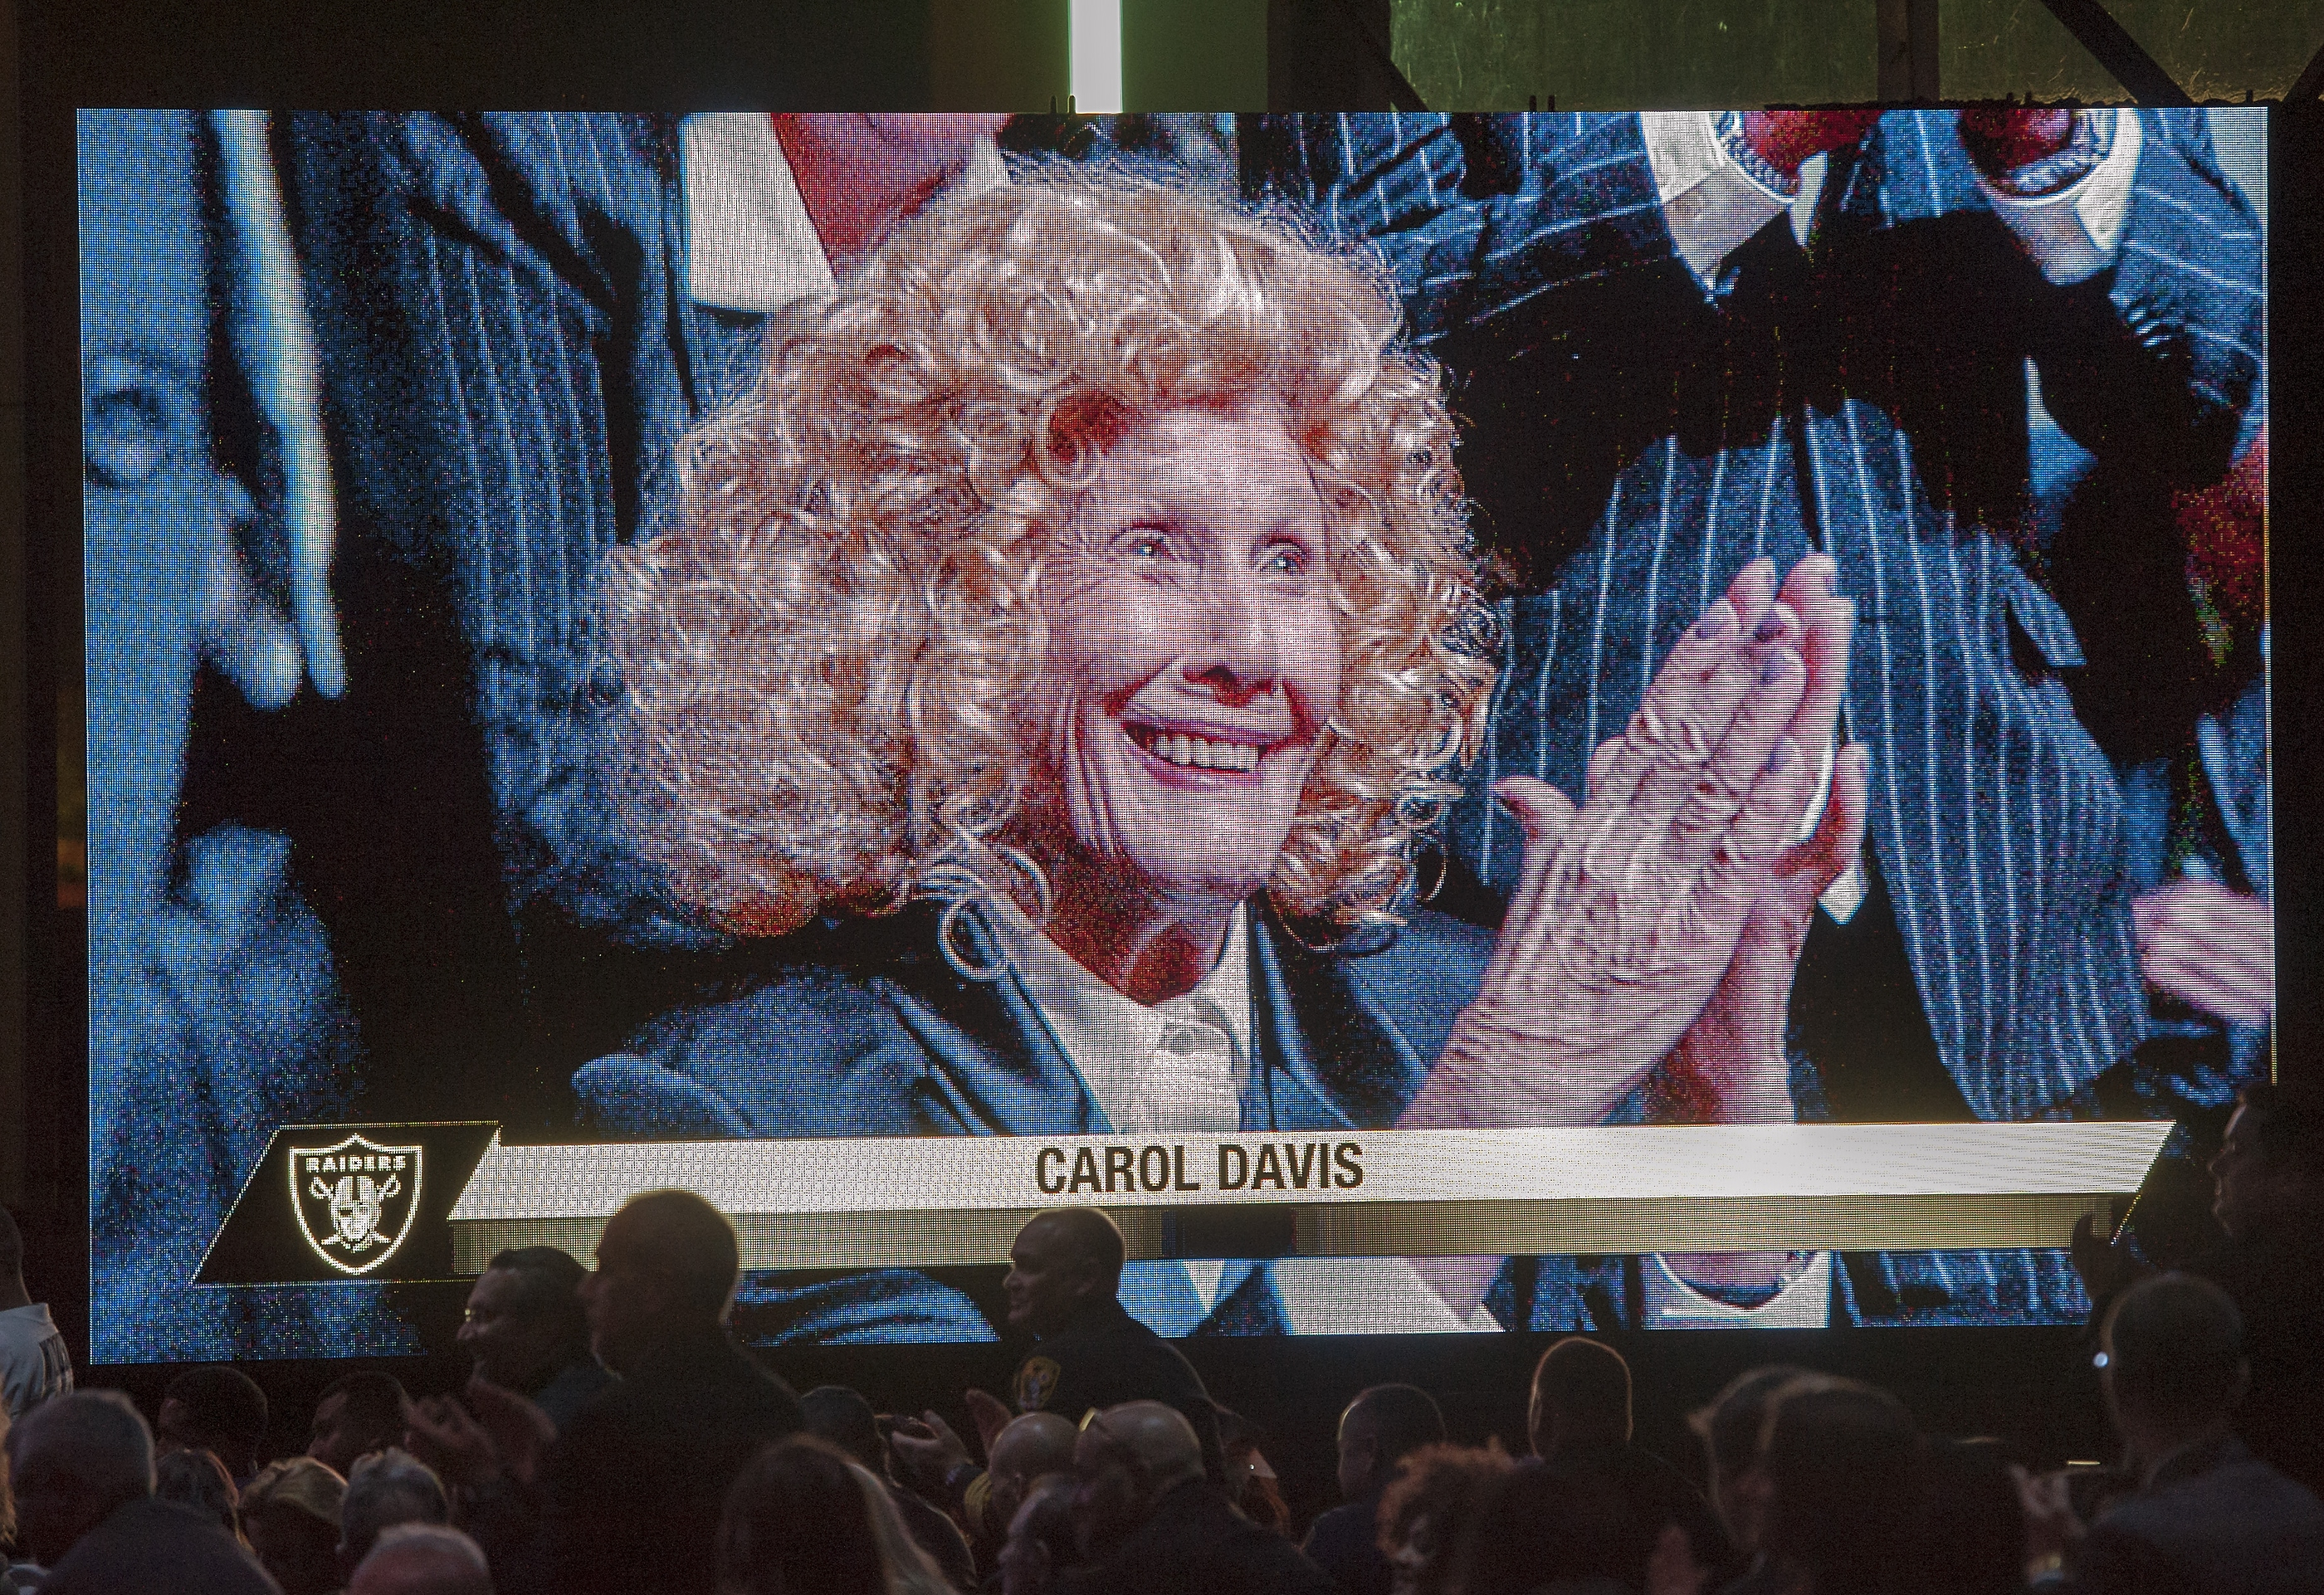 Carol Davis, mother of Oakland Raiders owner Mark Davis, is shown on screen from her front row seat at the Groundbreaking ceremony for the Raiders Las Vegas Stadium at the Polaris Avenue site in Las Vegas on Monday, Nov. 13, 2017. CREDIT: Mark Damon/Las Vegas News Bureau